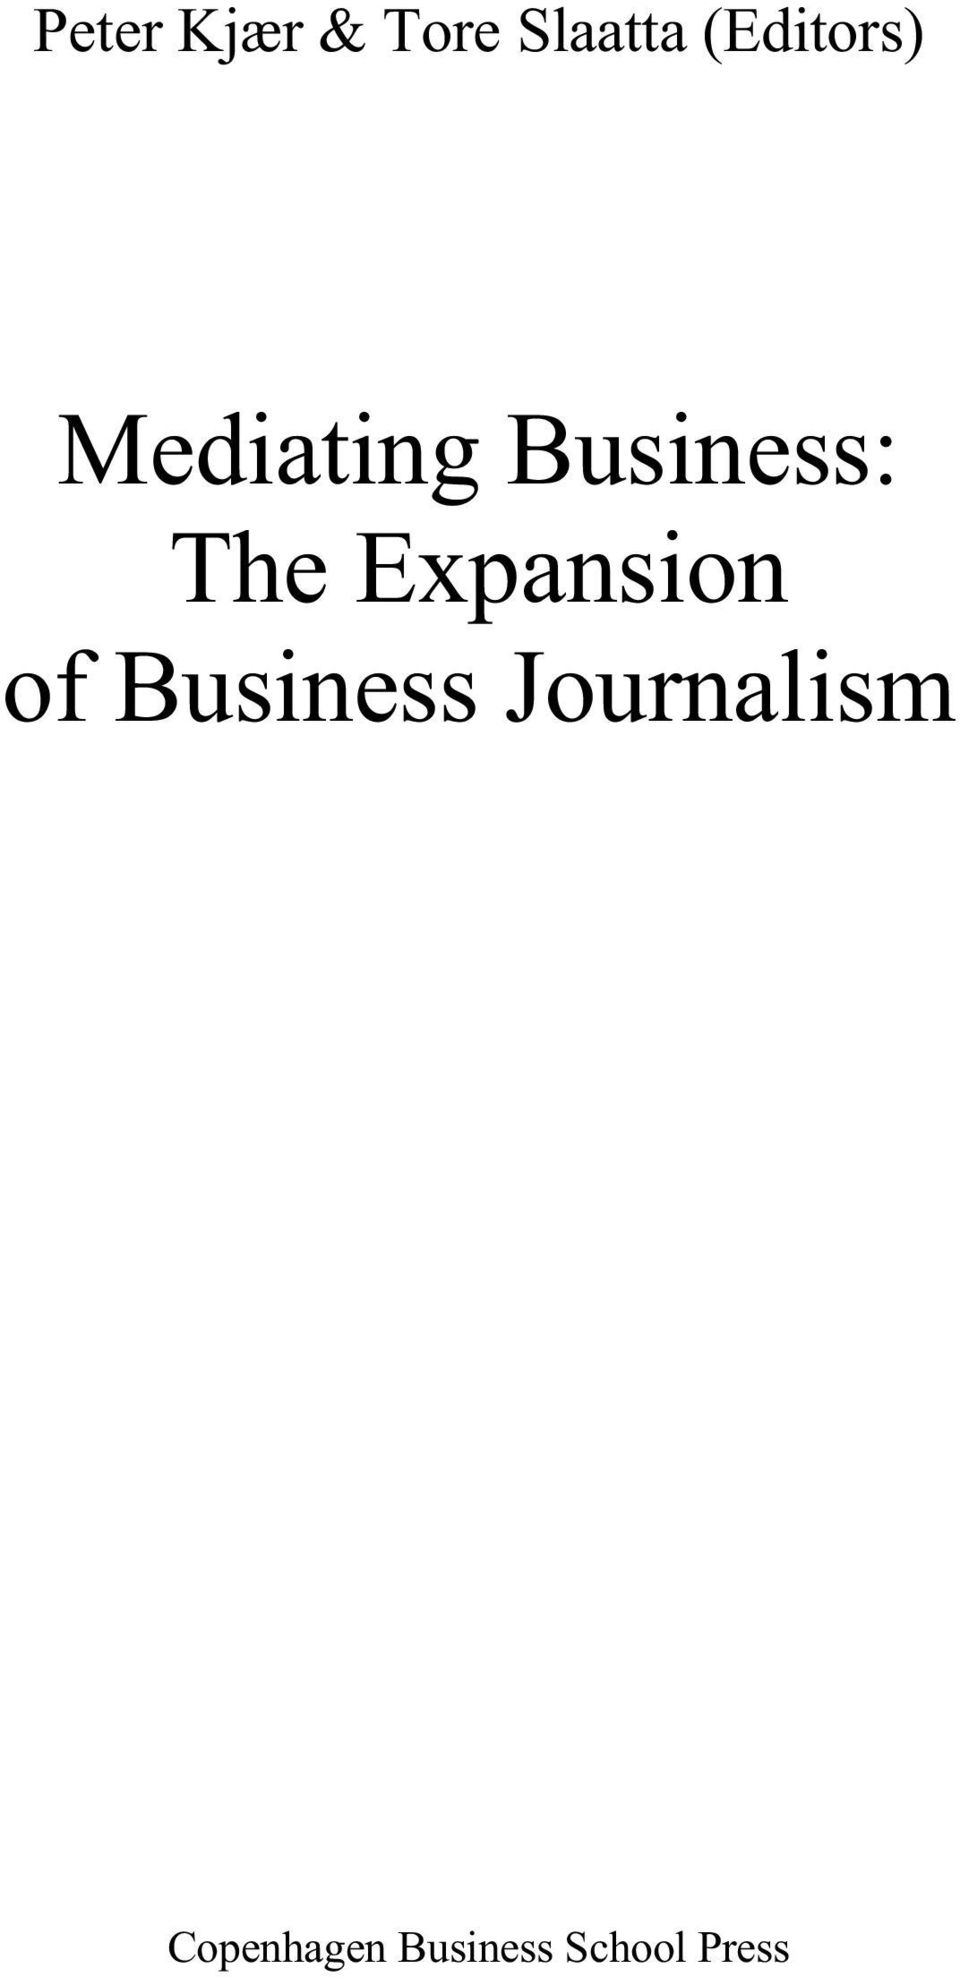 The Expansion of Business